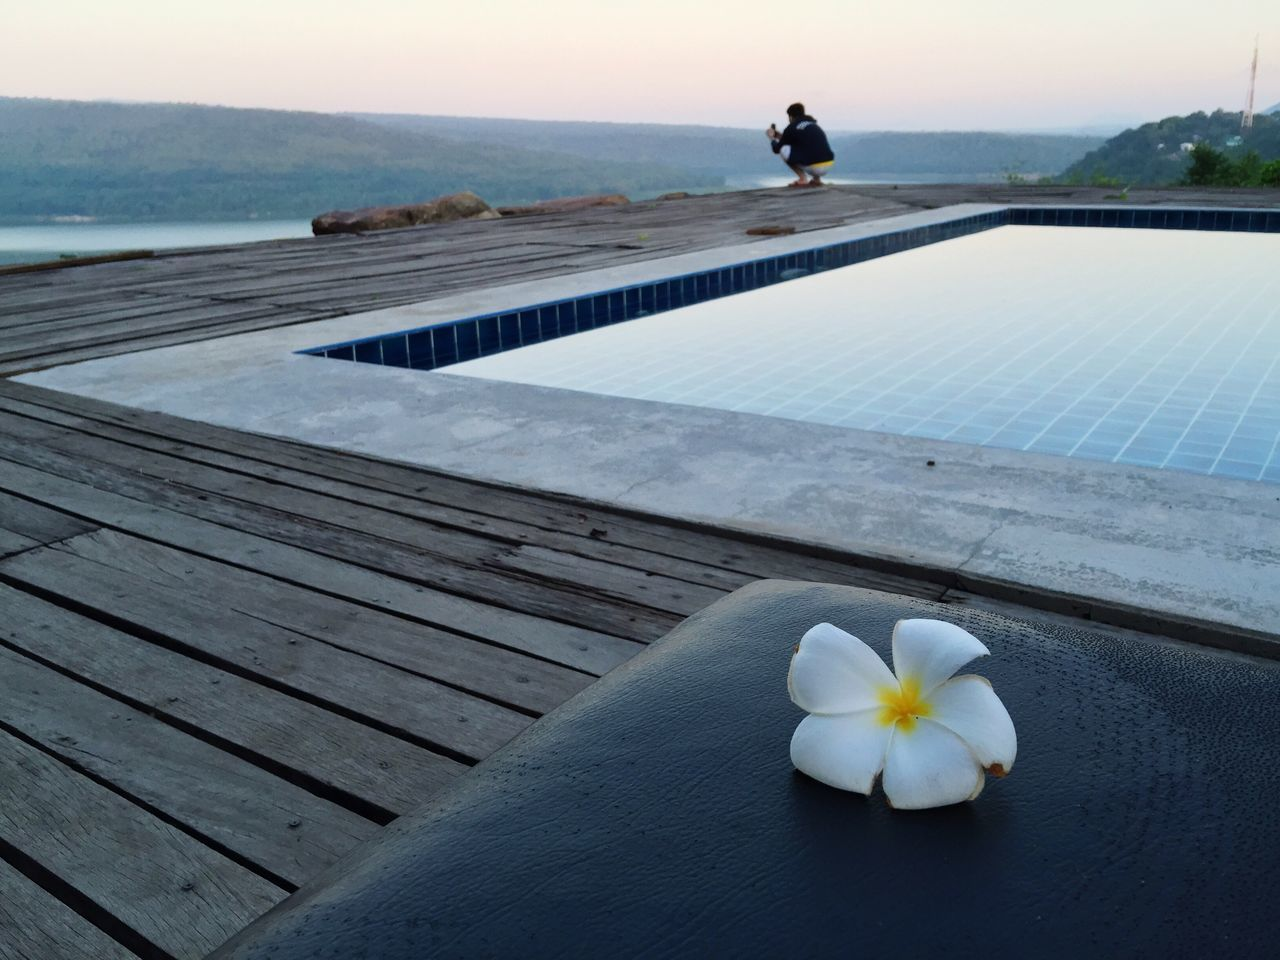 water, sea, nature, outdoors, beauty in nature, tranquil scene, day, tranquility, flower, real people, one person, horizon over water, sky, close-up, frangipani, freshness